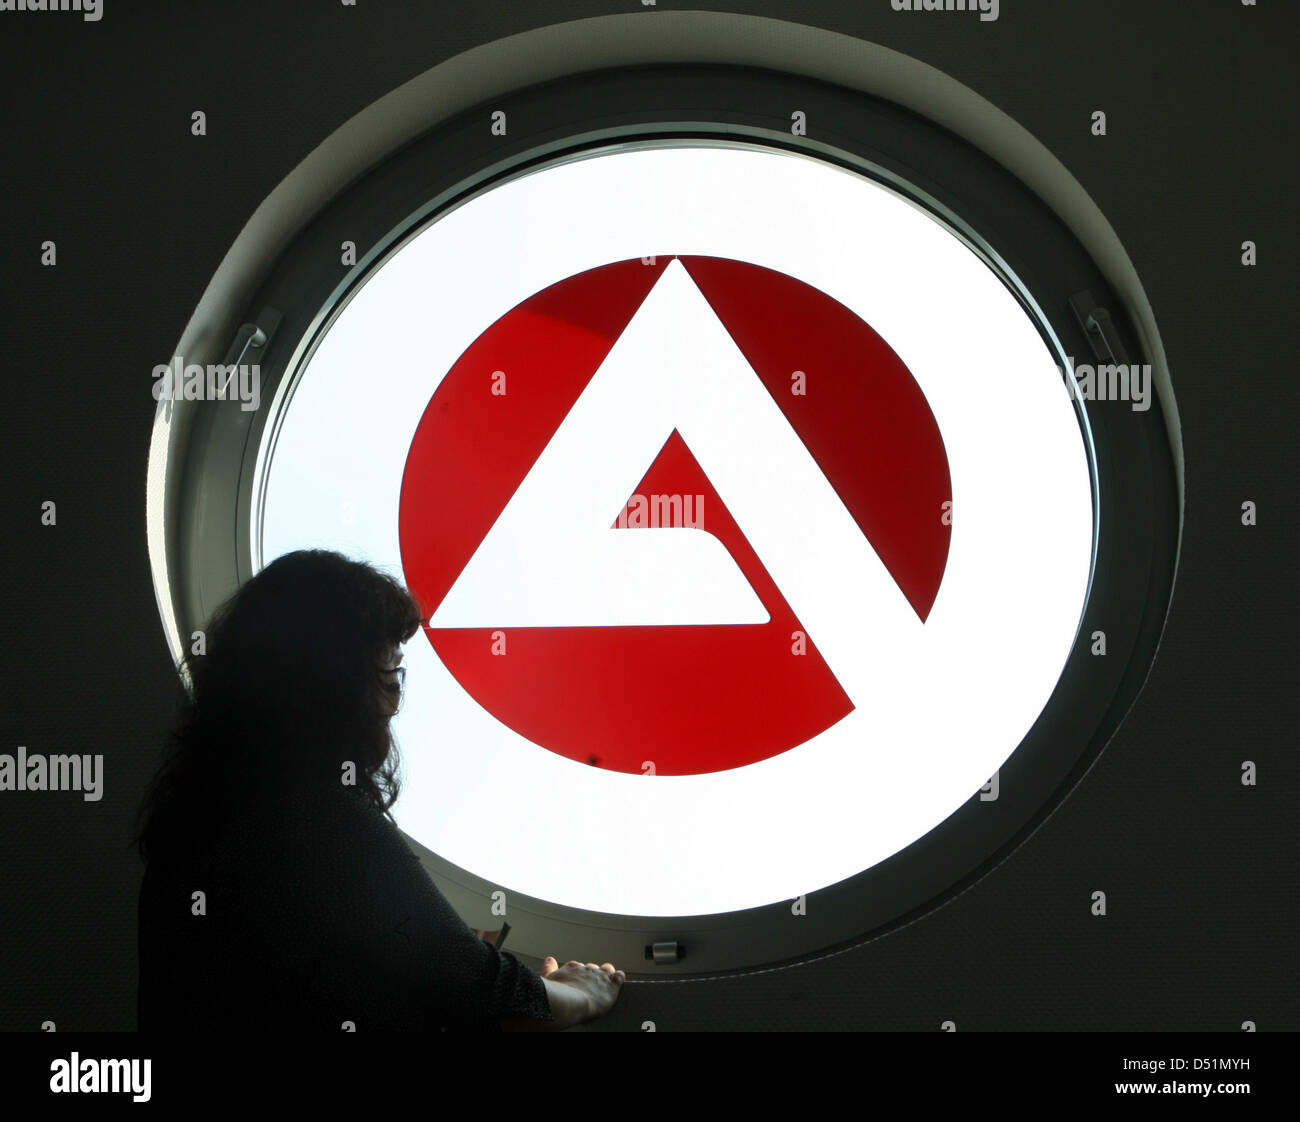 Afile picture dated 24 May 2007 shows the logo of the German 'Agentur fuer Arbeit' employment agency in Gelsenkirchen, Stock Photo